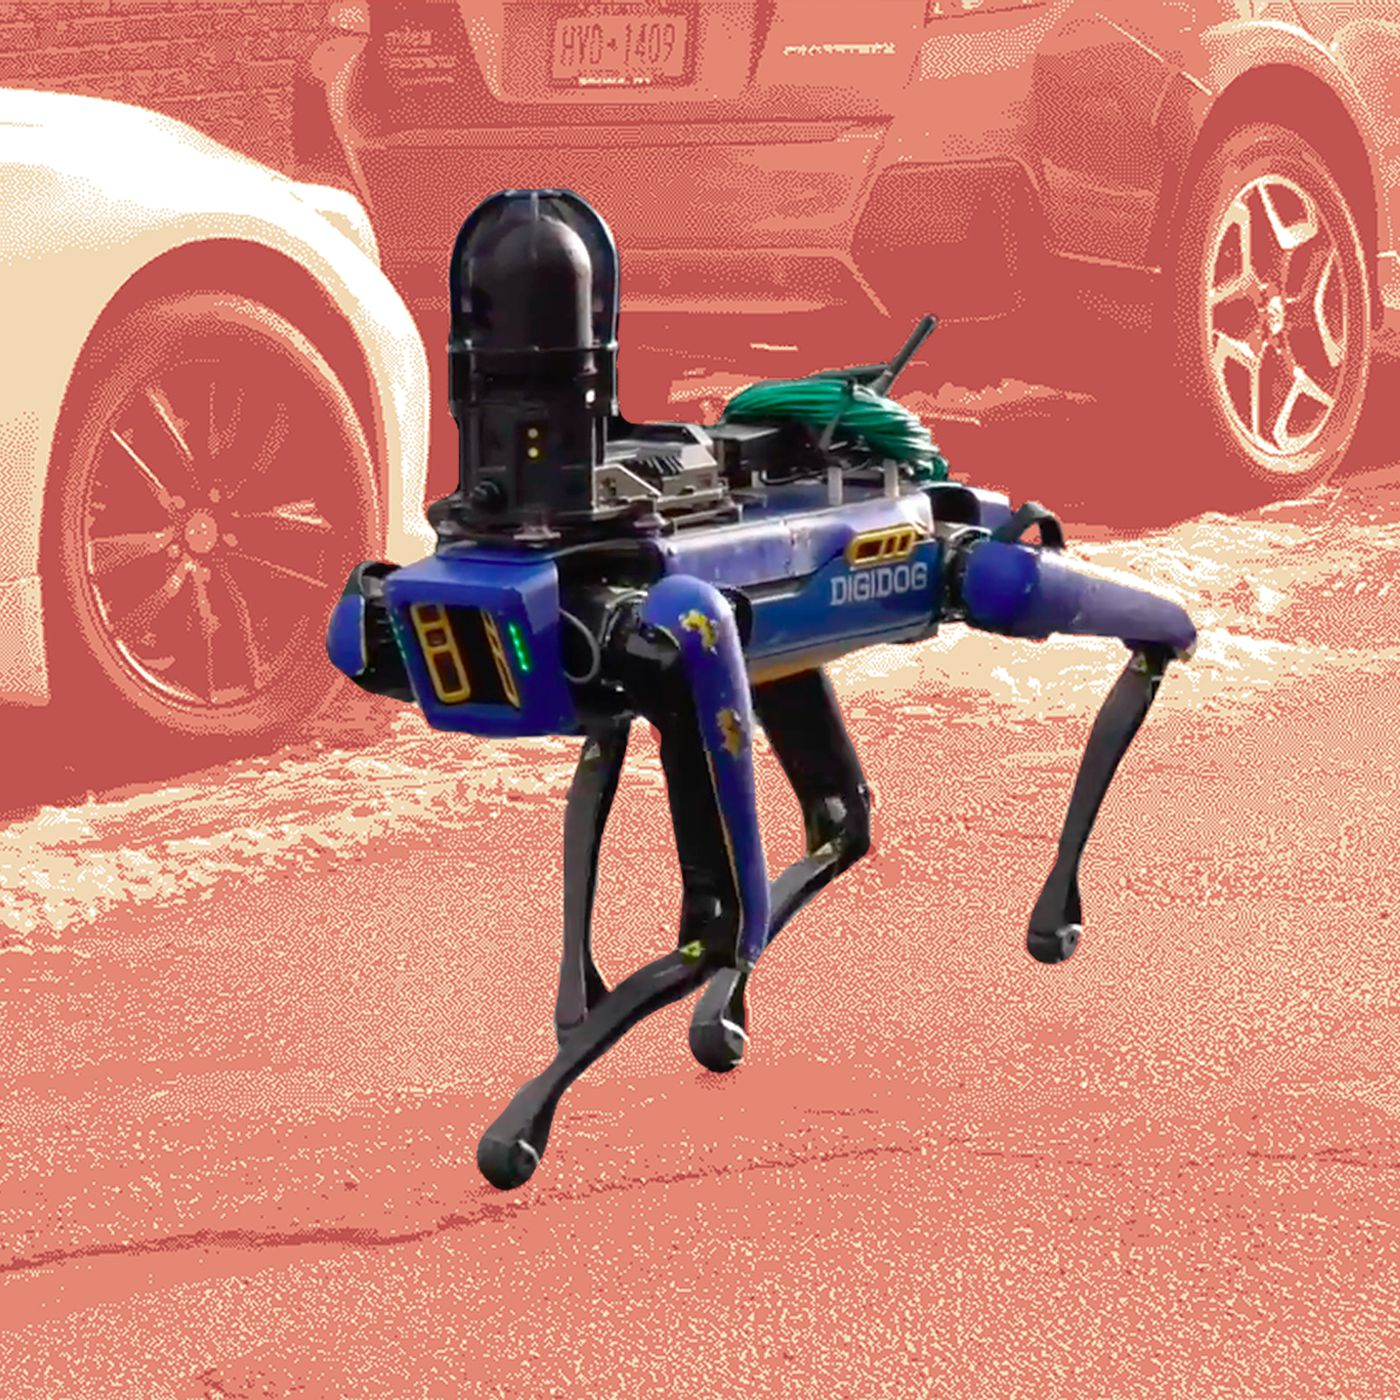 NYPD%27s+robot+%27dog%27+elicits+controversial+comparisons+to+Netflix%27s+TV+Series+%22Black+Mirror%22